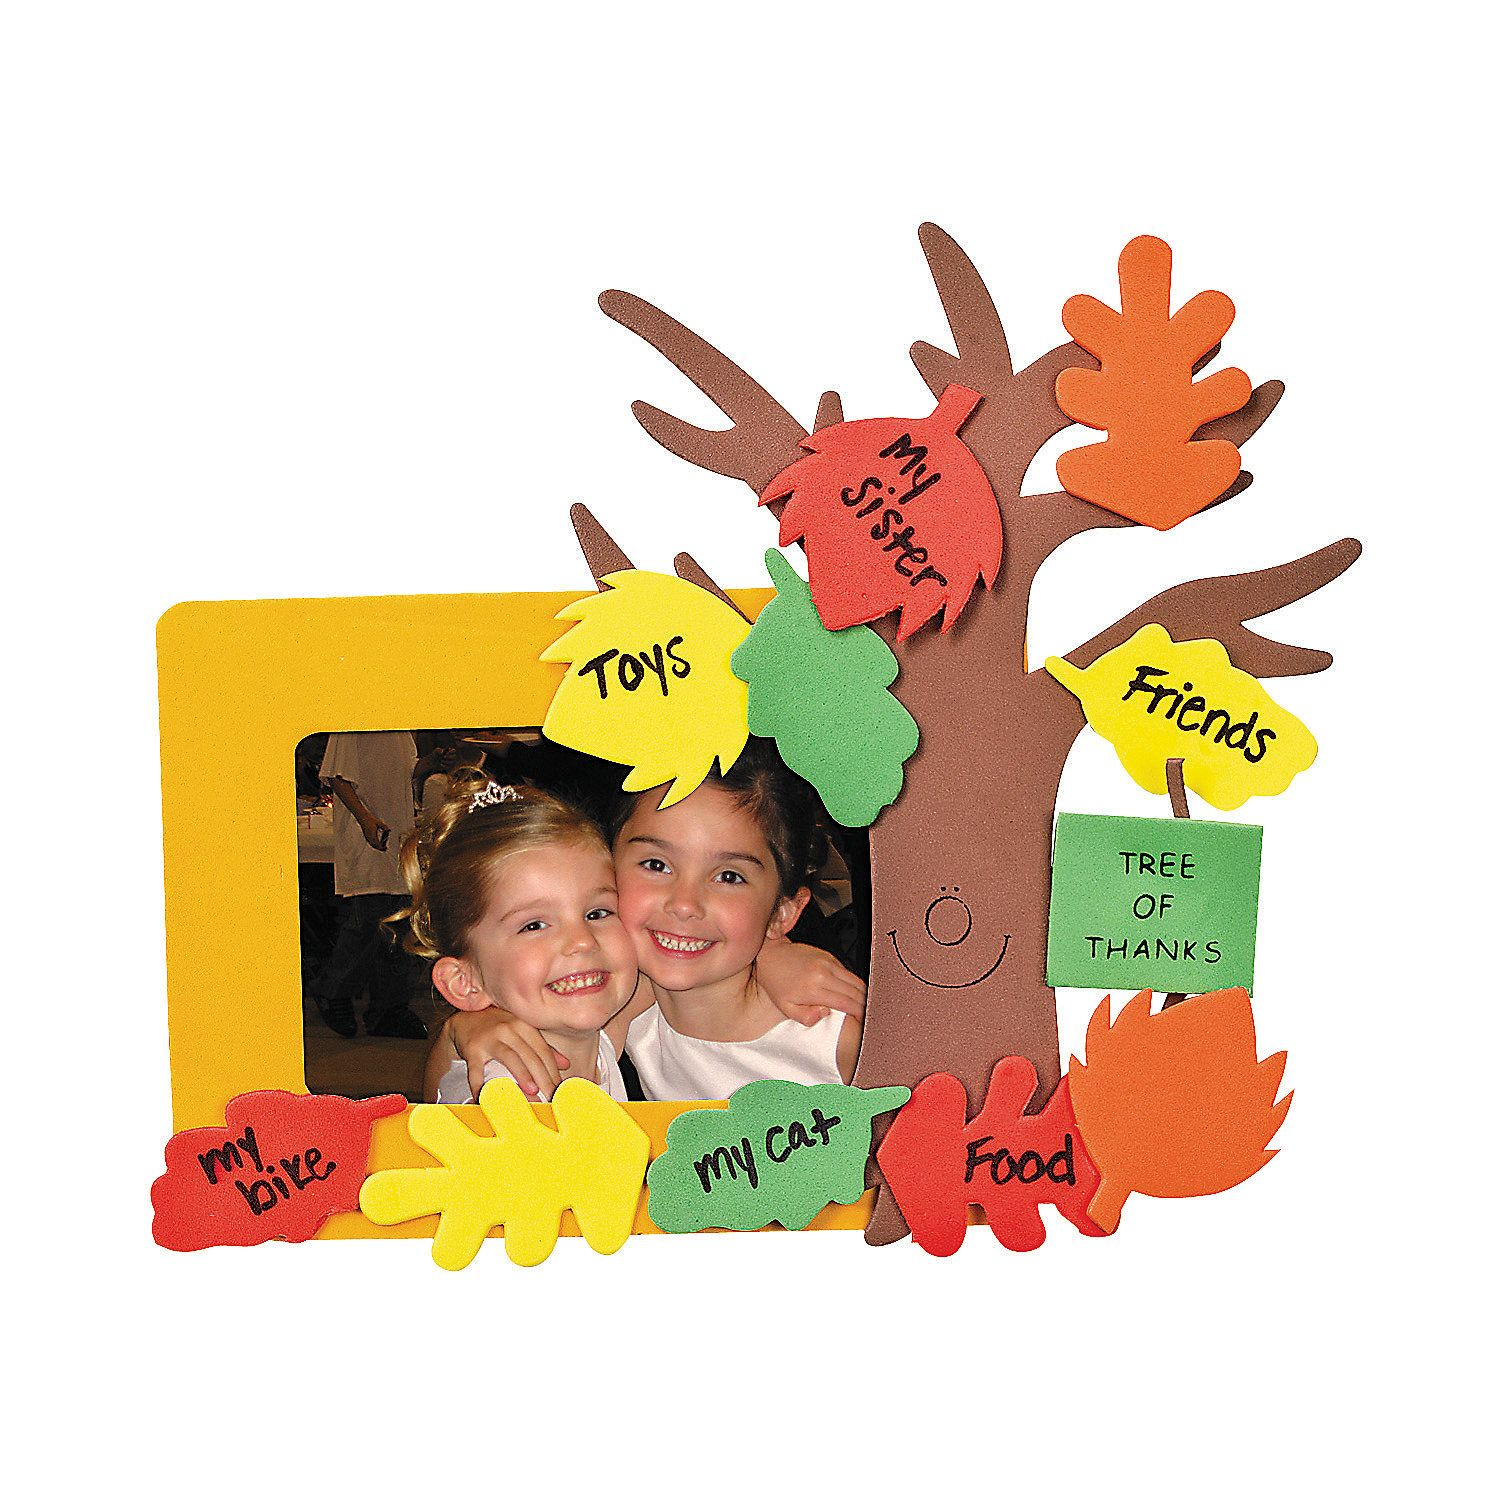 Diy tree of thanks tree of thanks picture frame magnet craft kit tree of thanks picture frame magnet craft kit capture smiles with this tree craft kit have kids use their own markers to write their blessings jeuxipadfo Gallery